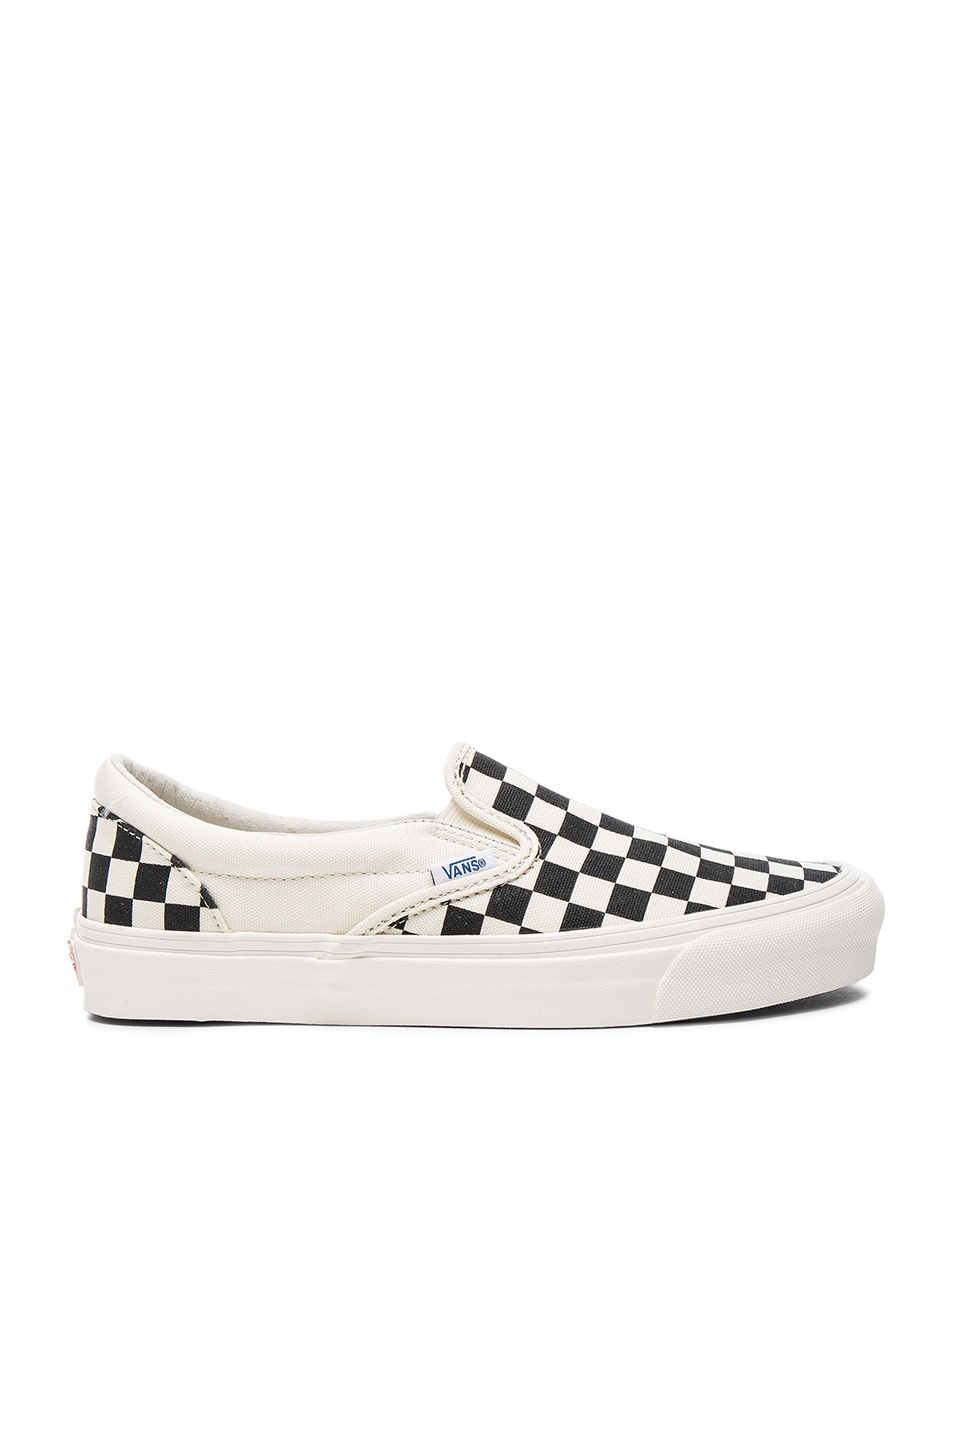 vans vault og slip on lx checkerboard